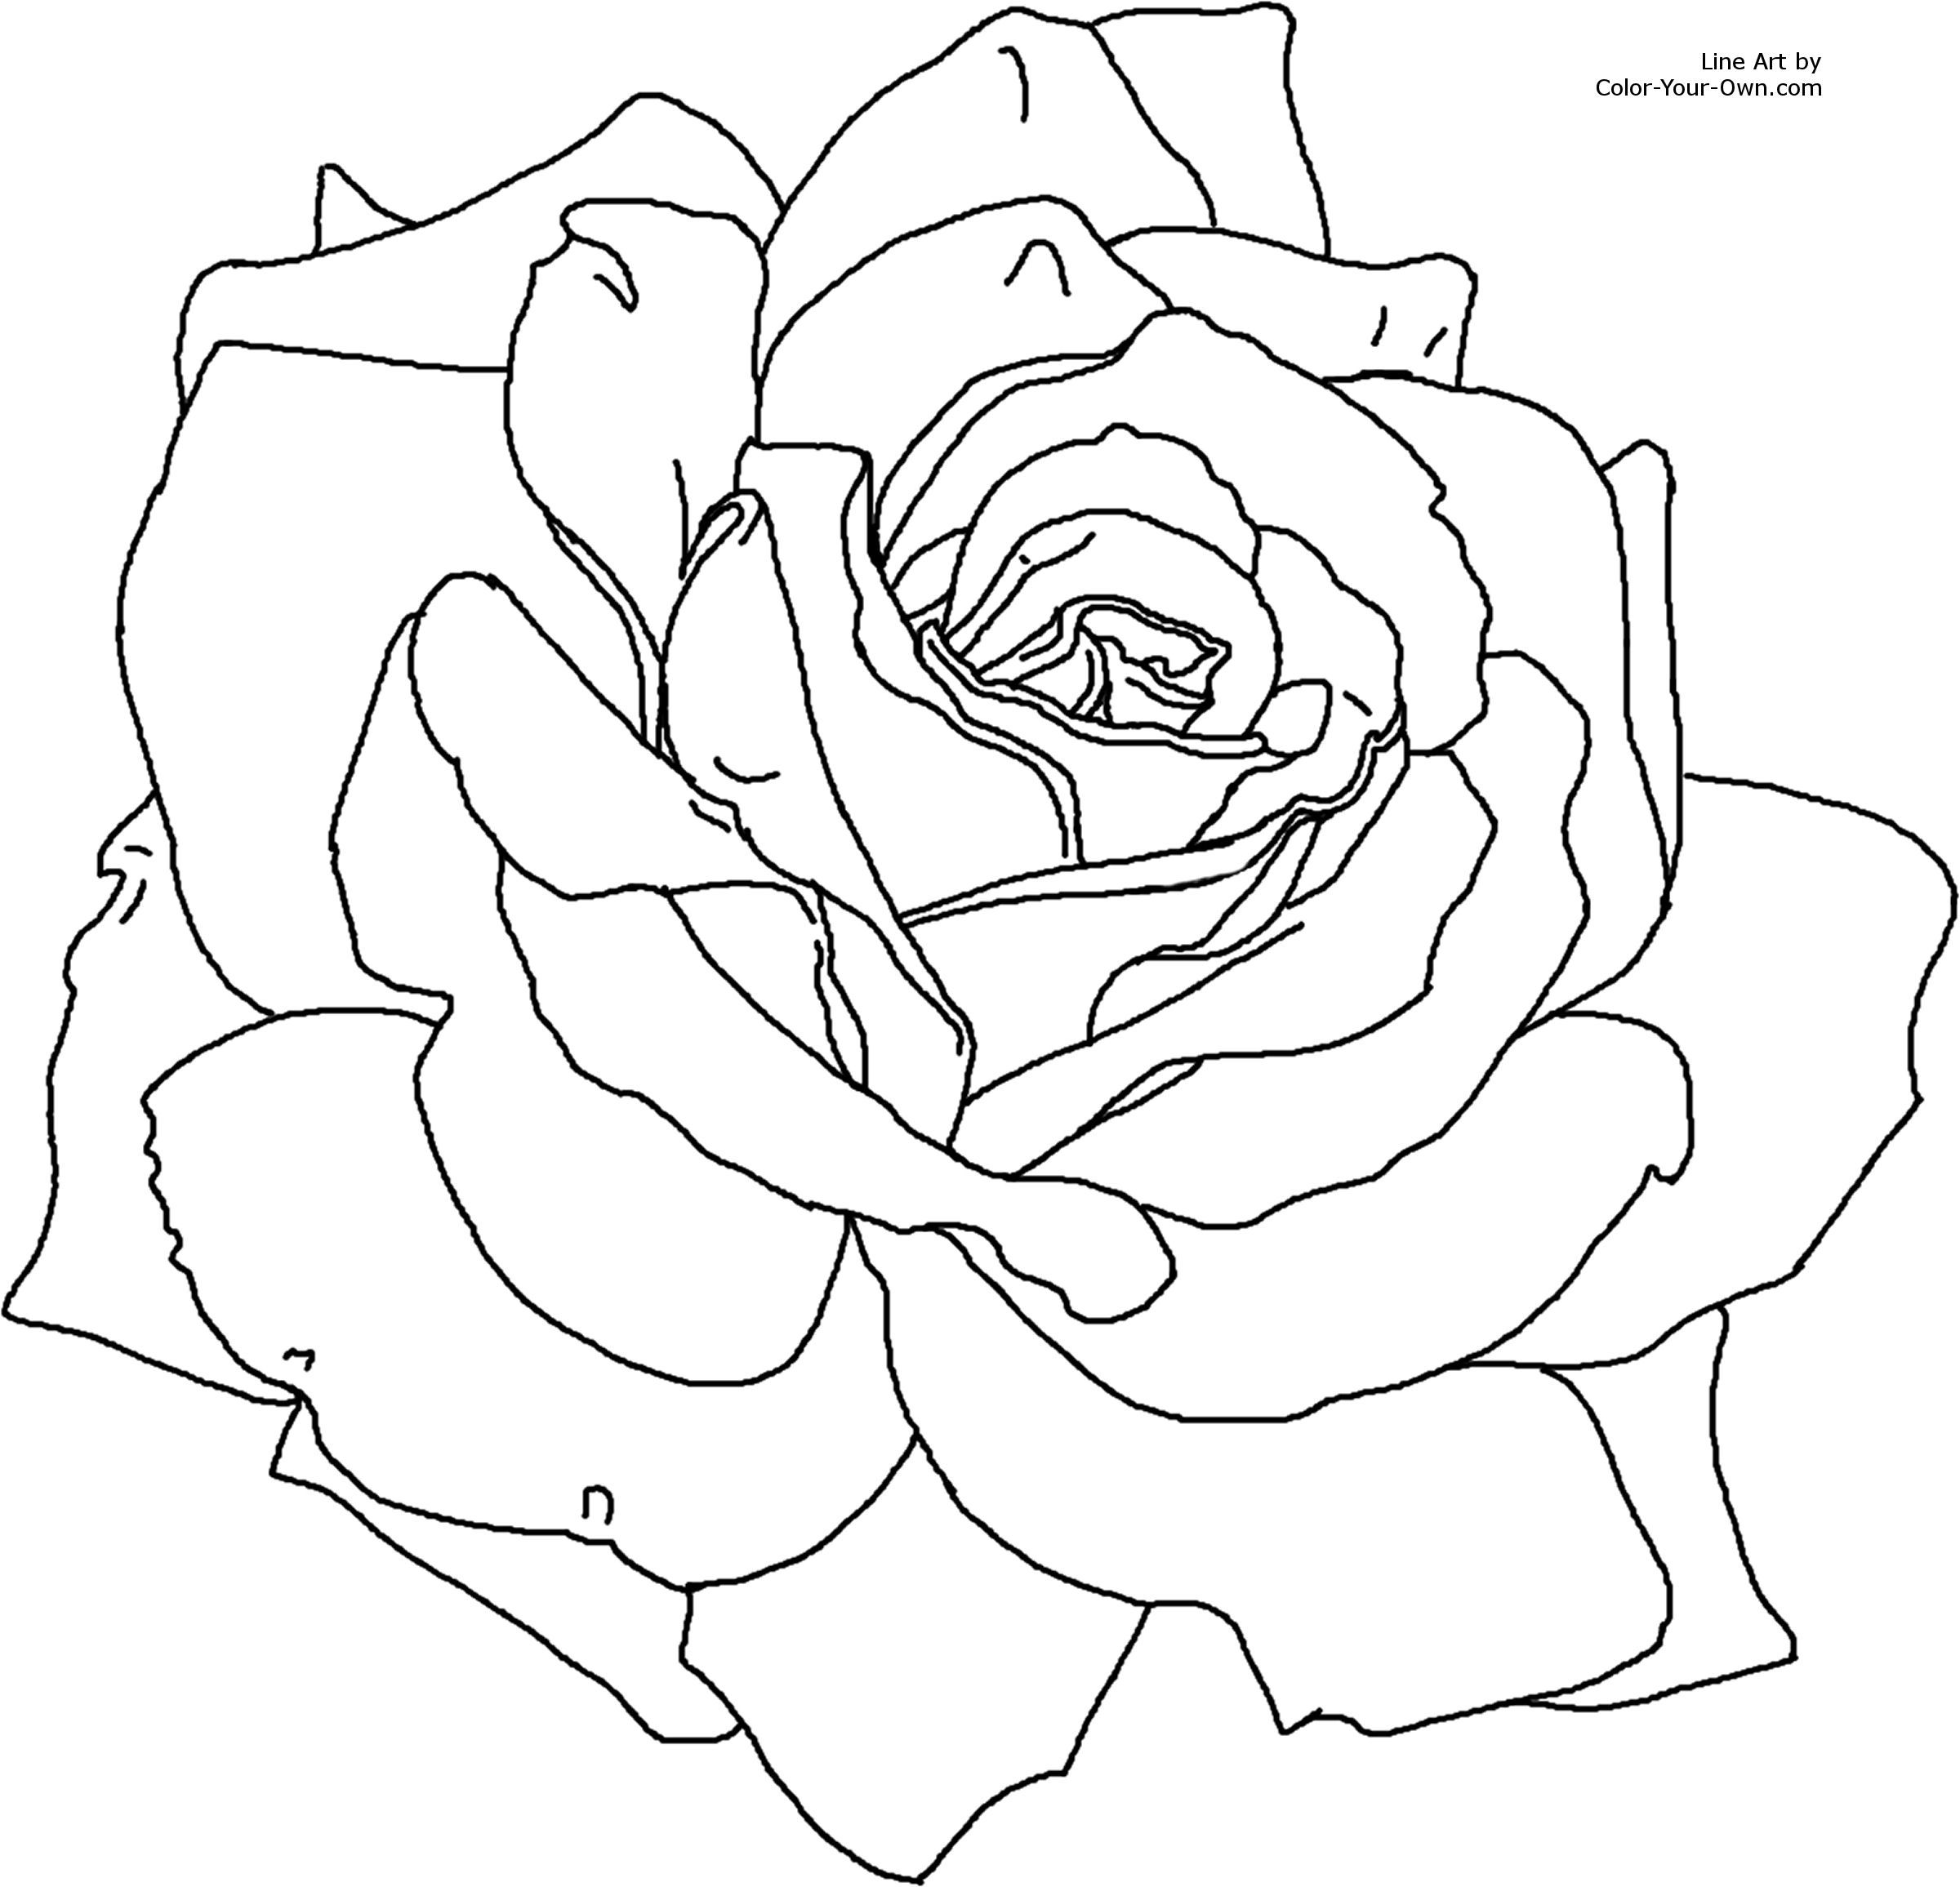 8 5 x 11 printable coloring pages - Flower Page Printable Coloring Sheets For The 8 5 X 11 Printable Size Click Here